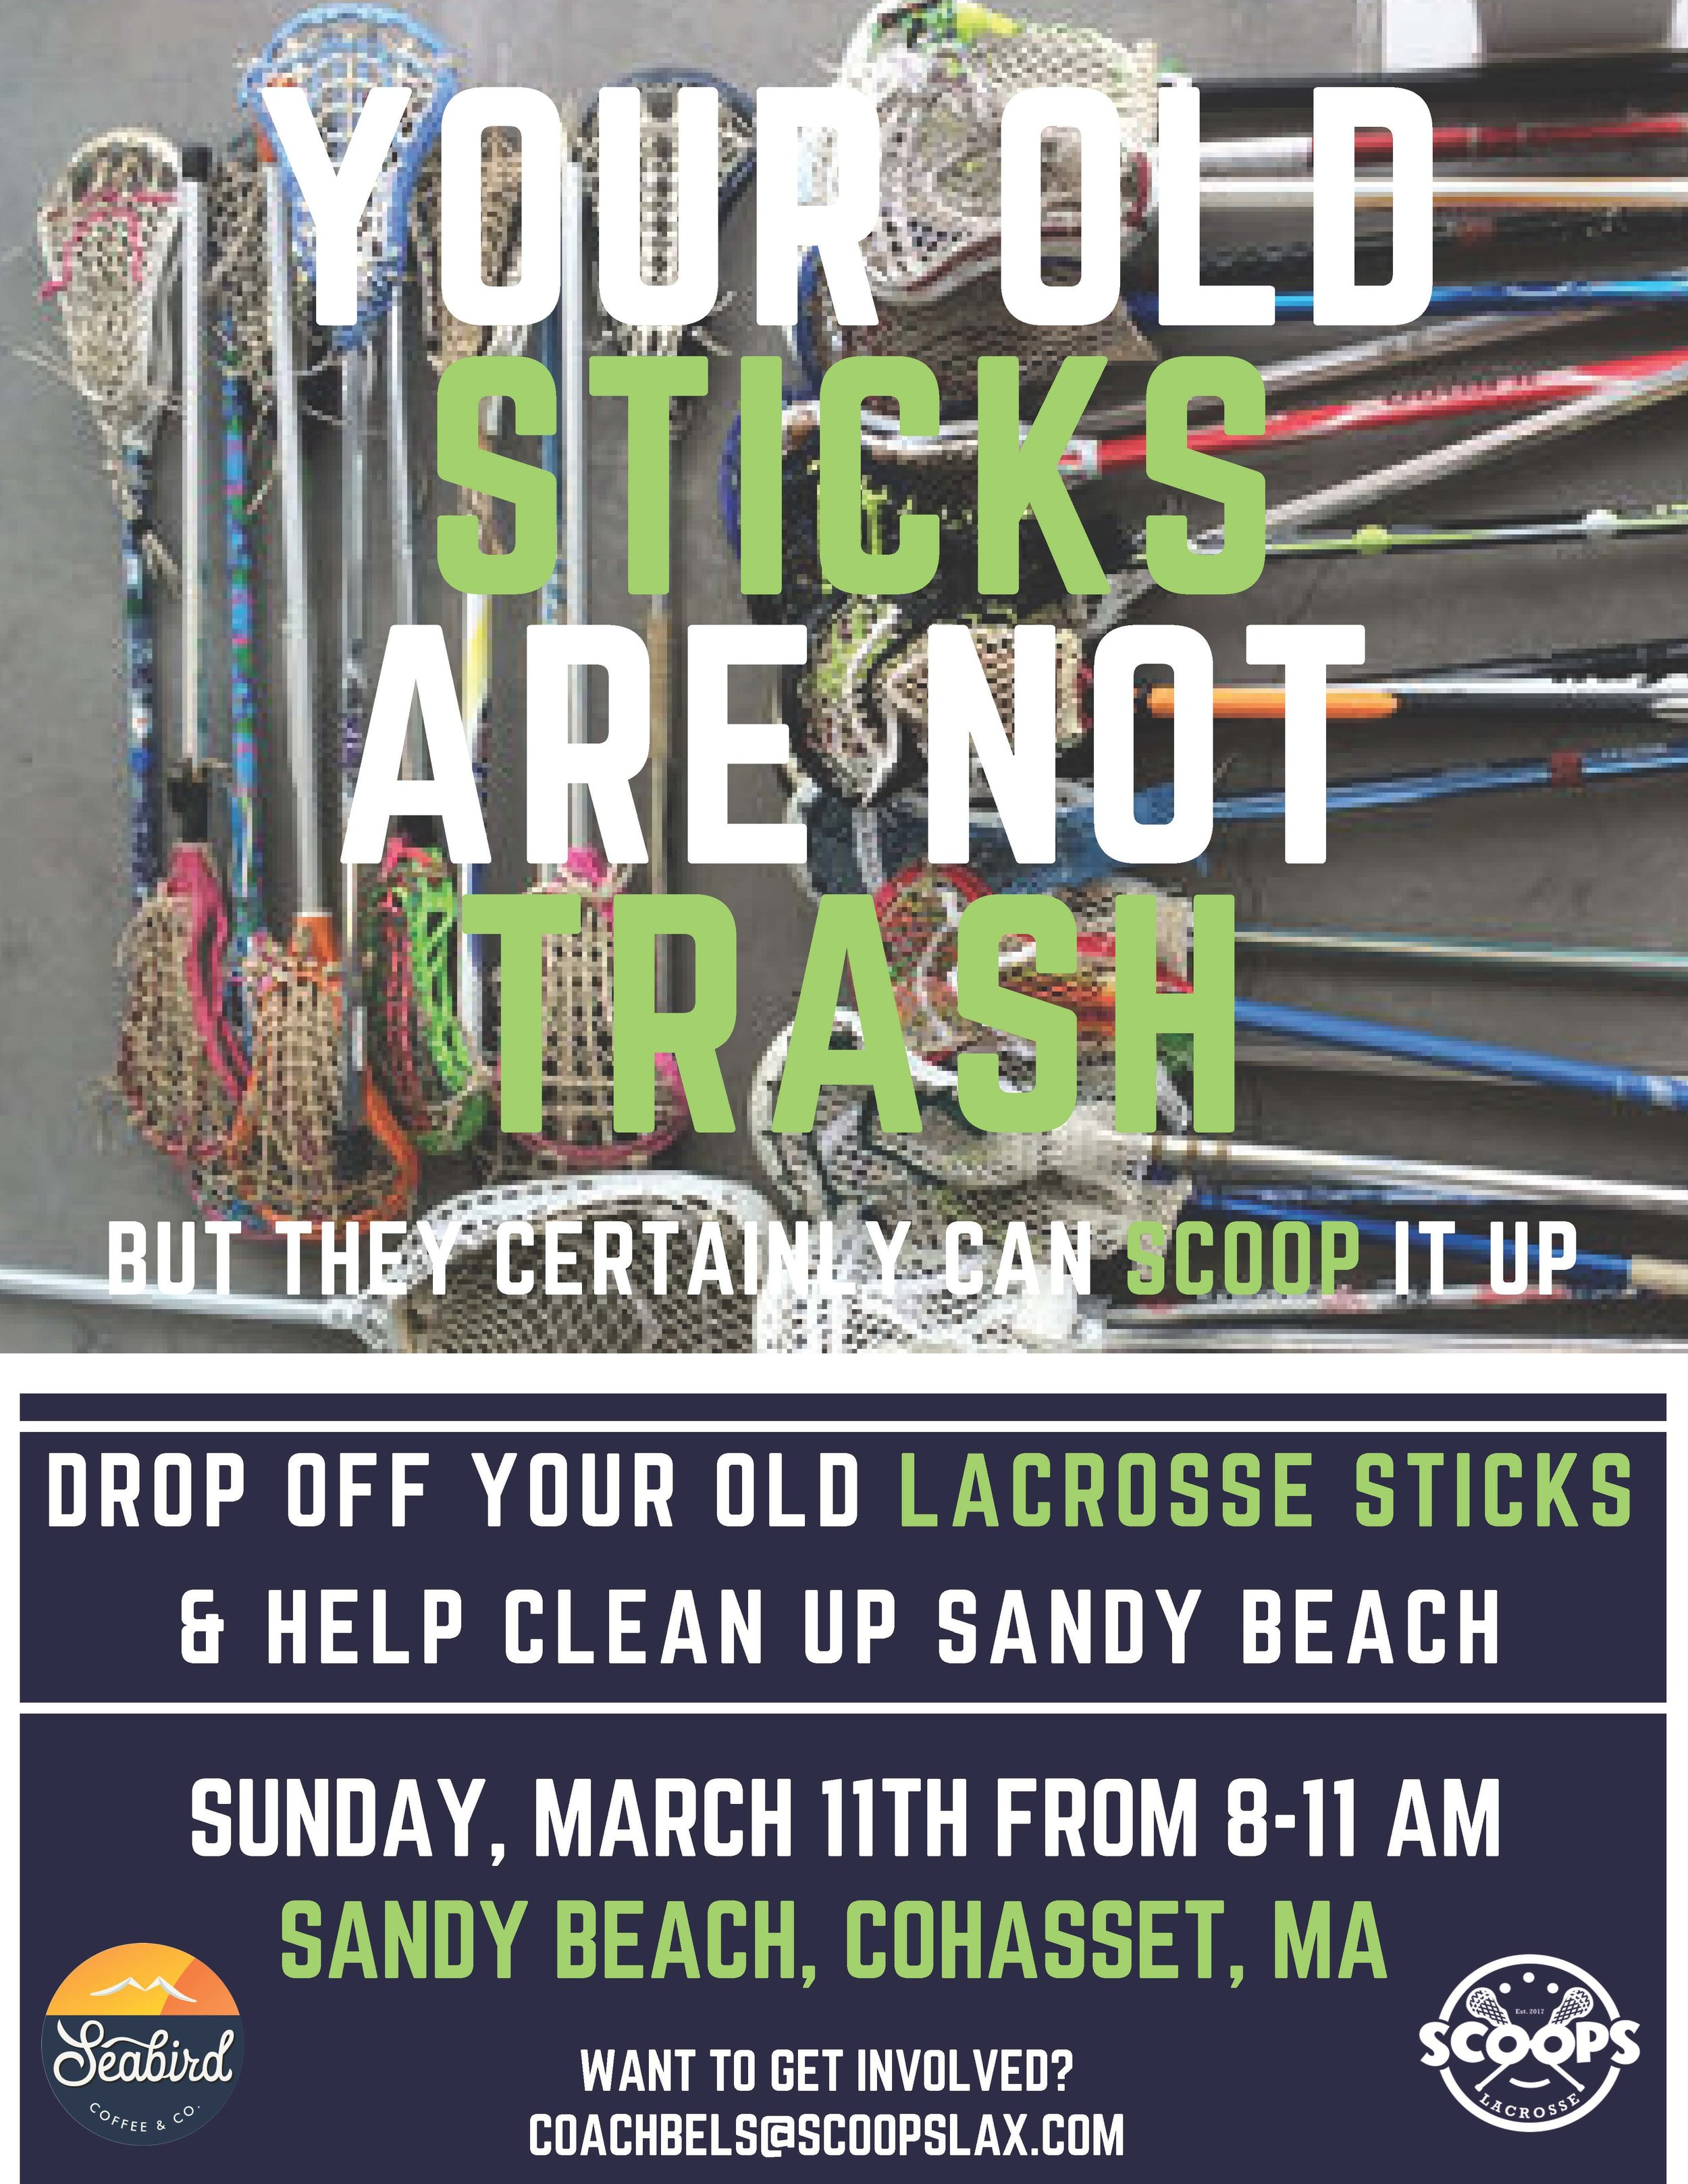 Scoops partnered with Seabird Coffeeto clean up Sandy Beach in Cohasset. - Over 50 lacrosse sticks were donated and over 25 bags of trash were collected from the clean up! THanks to everyone who volunteered their time.